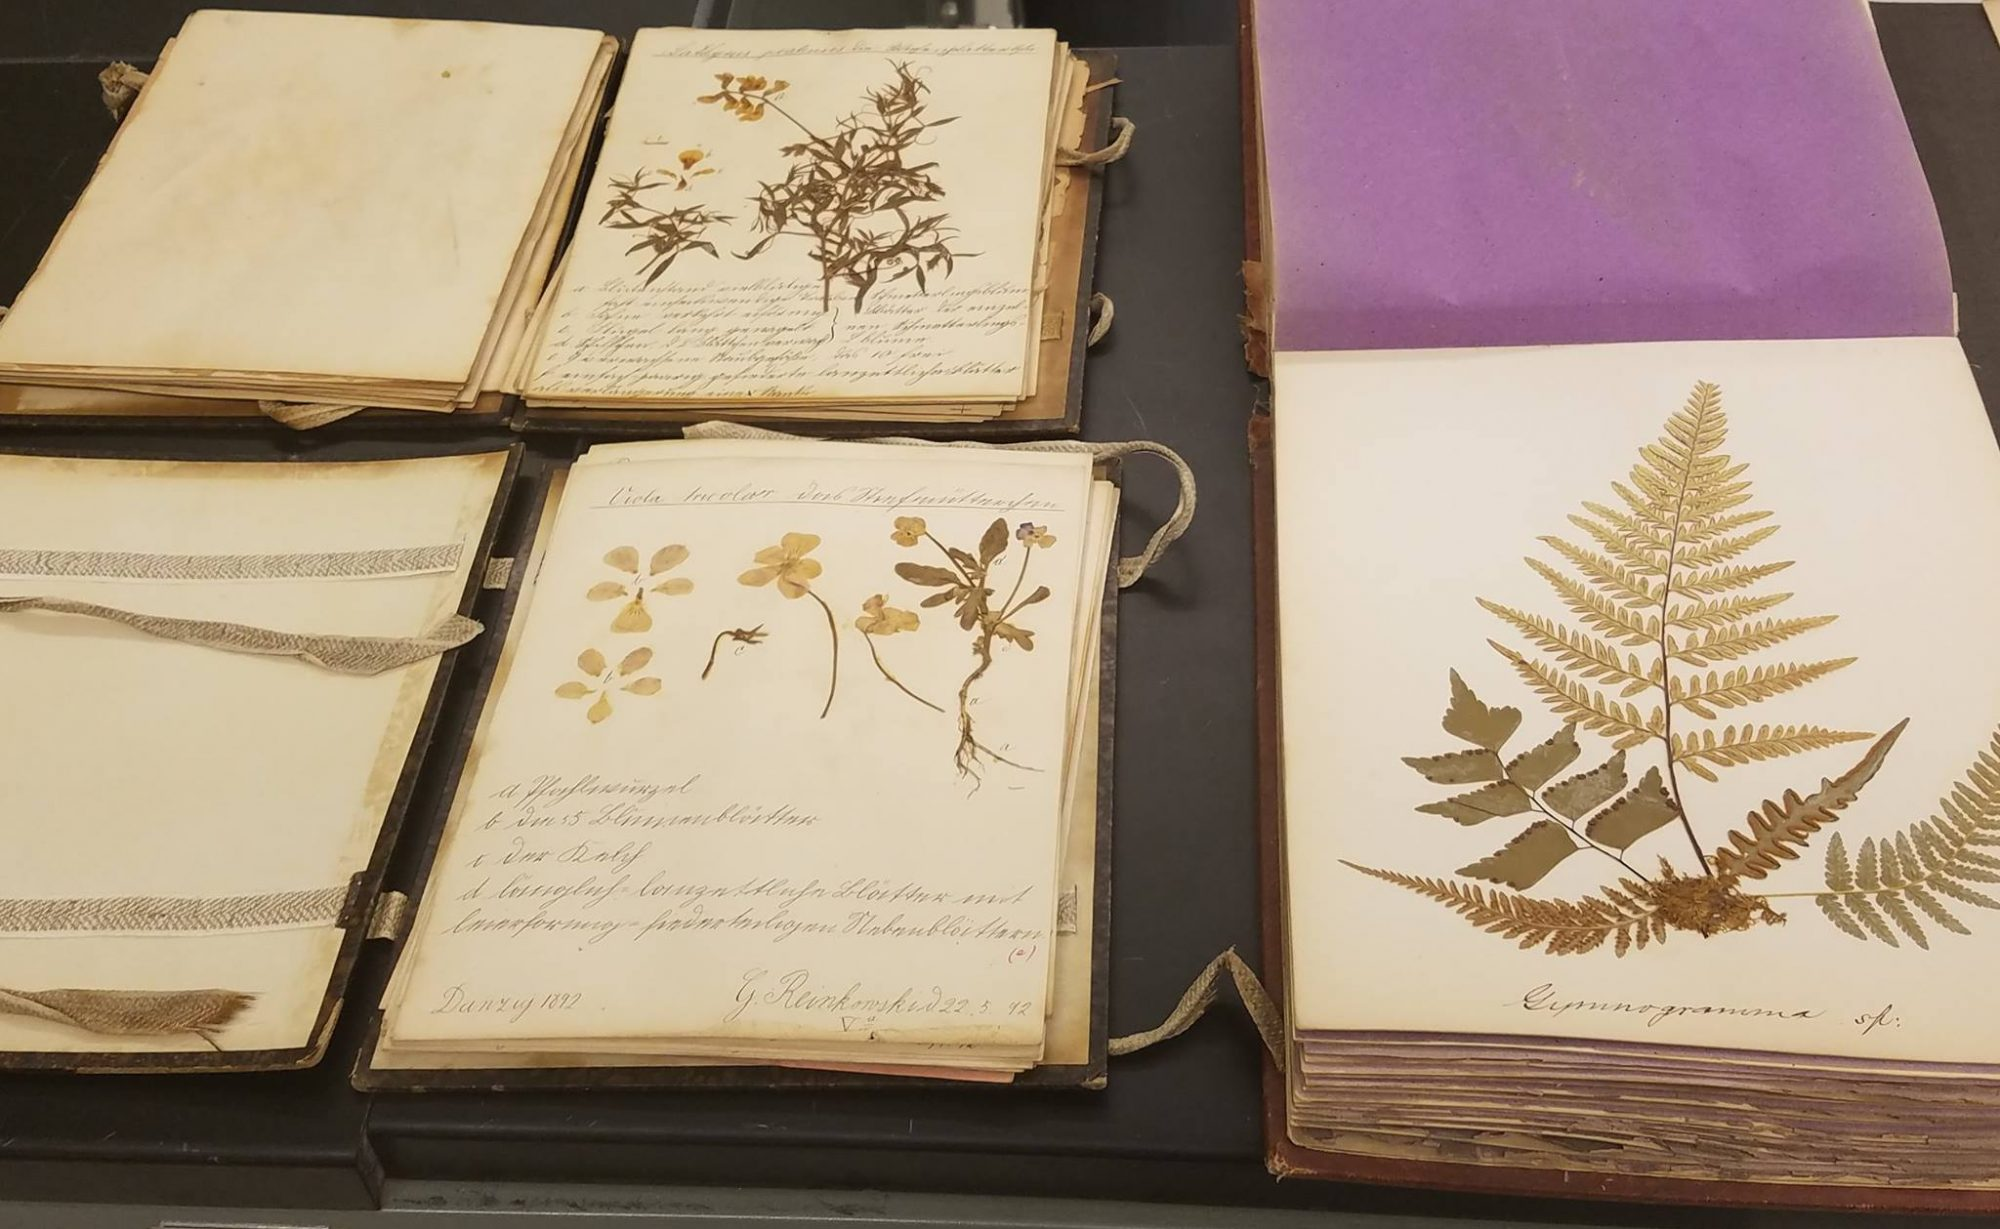 University of Illinois Herbarium